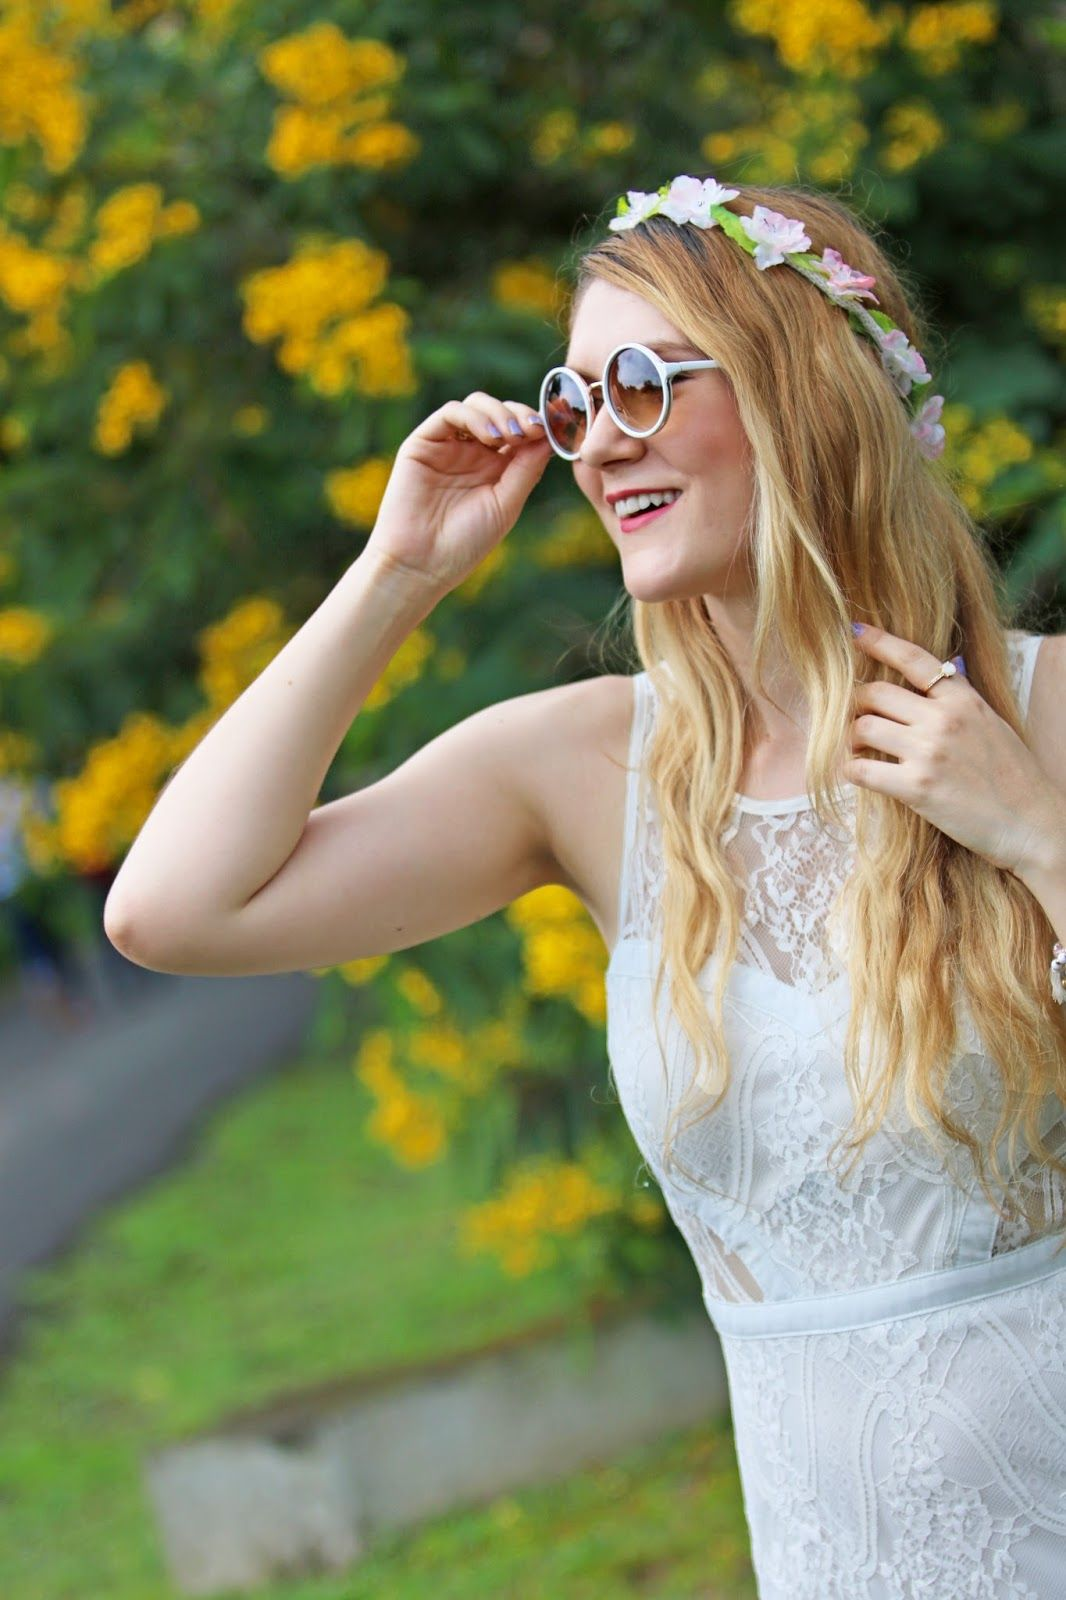 Pretty Flower Crown Outfit My Personal Style Pinterest White